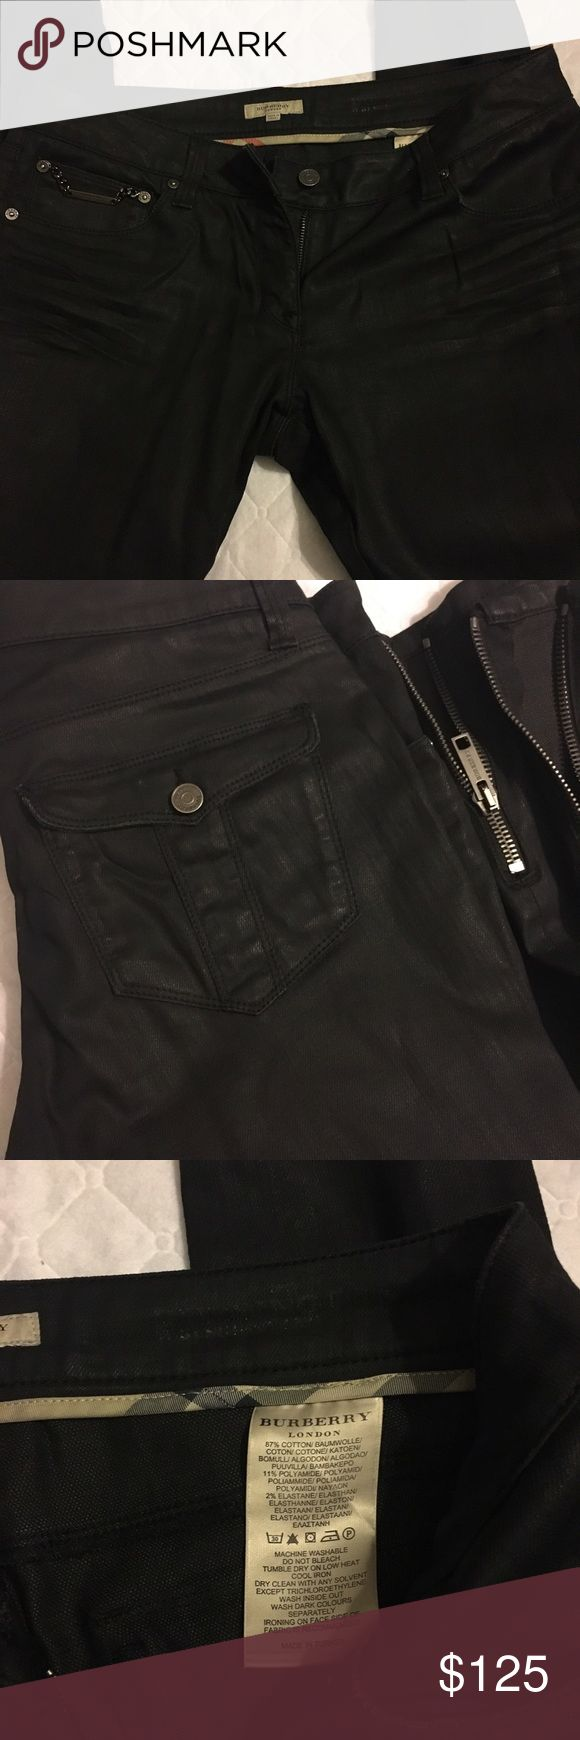 Burberry black waxed coated pants Black, wax coated pants. Zippered ankles and an approximate inseam of 27 inches (cropped). Burberry Pants Ankle & Cropped